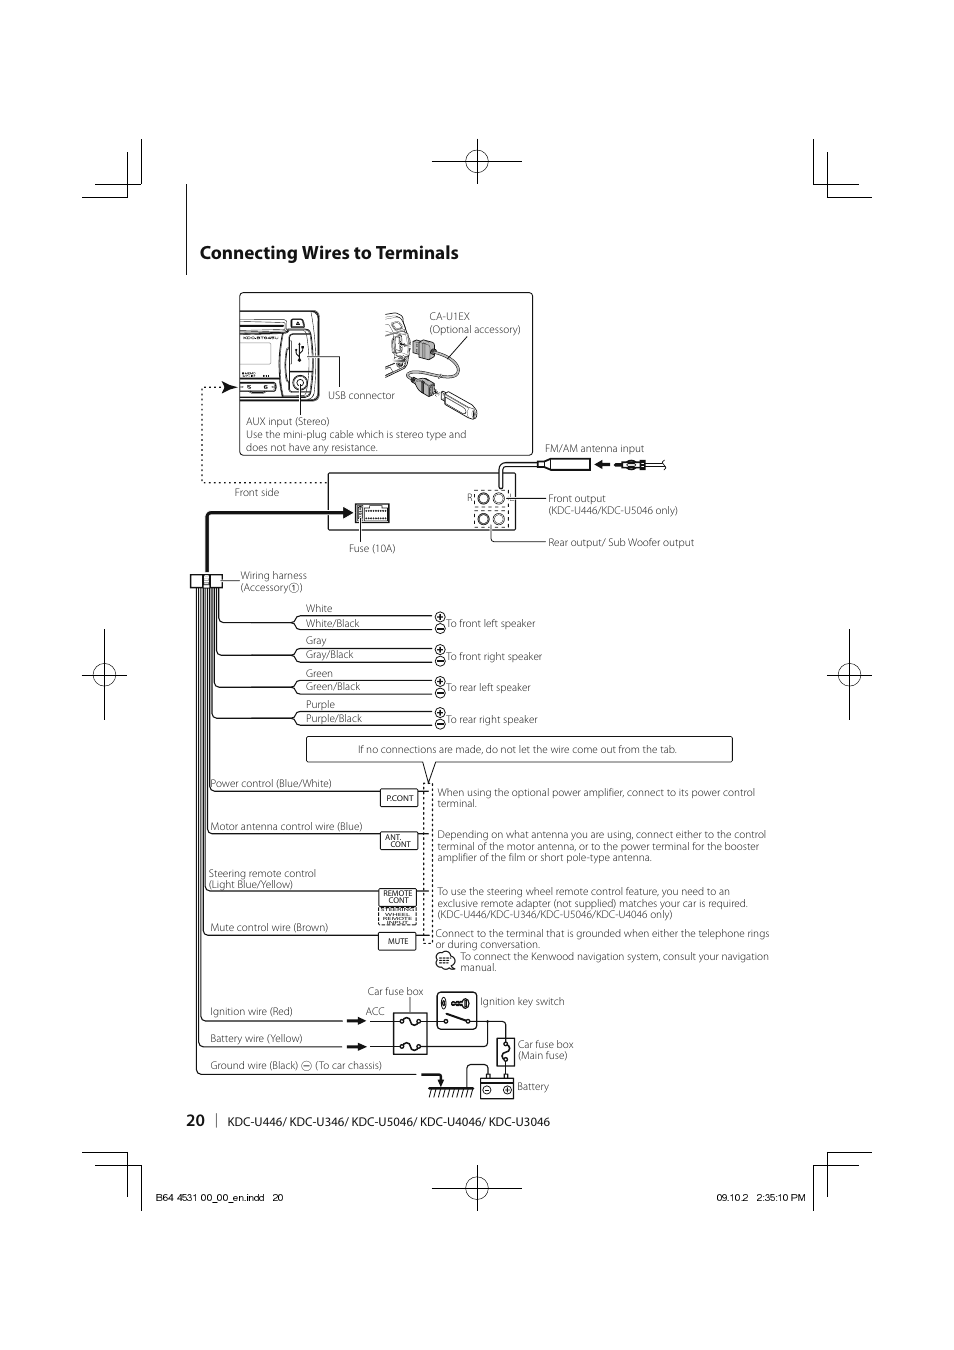 kenwood kdc wiring diagram manual 1976 ct90 connecting wires to terminals u3046 user page 20 24